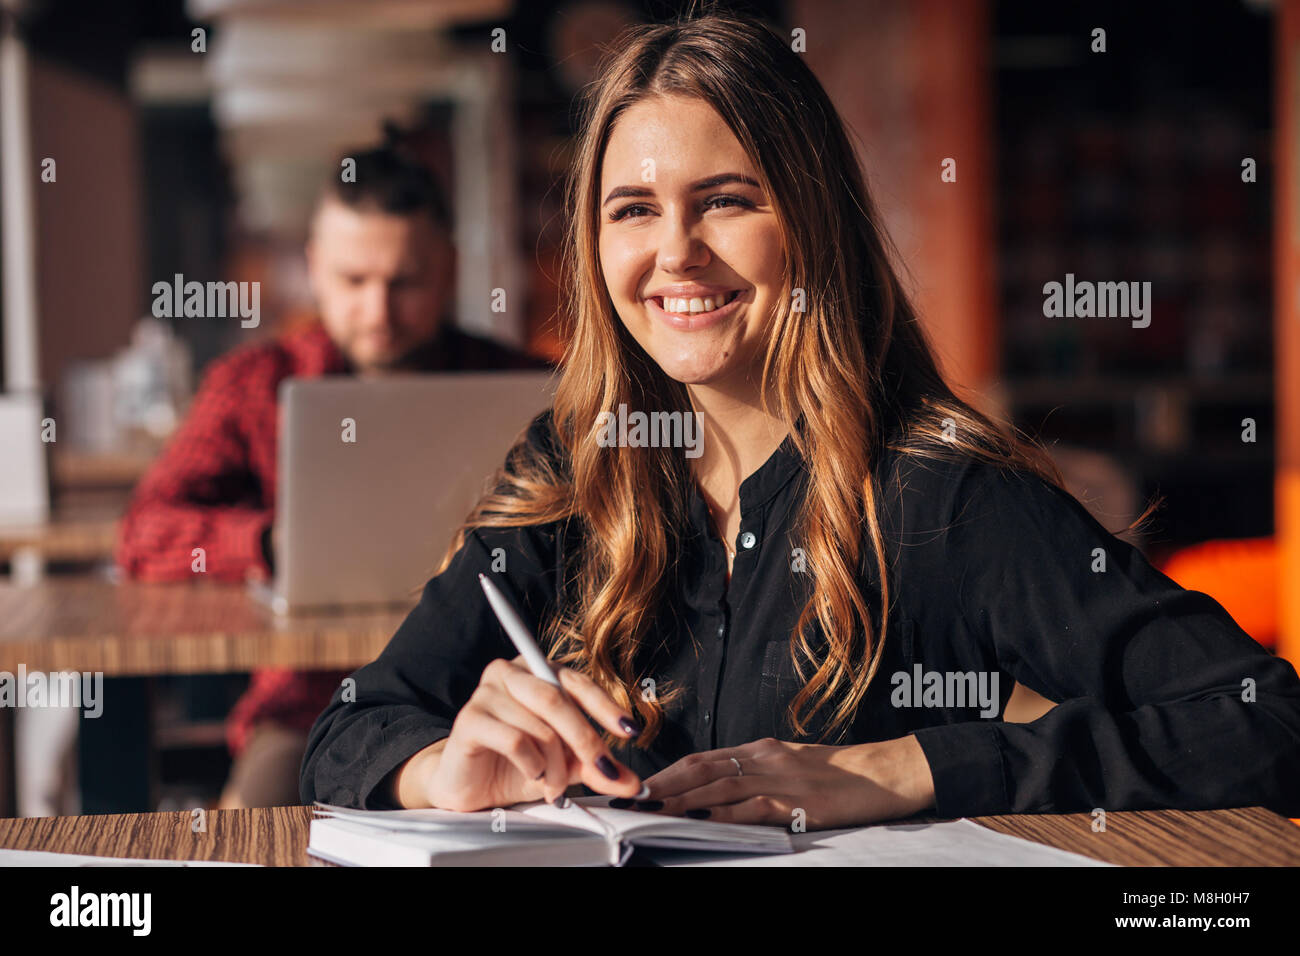 young woman smiling at camera while working remotely in coffee shop. Positive female with notepad - Stock Image